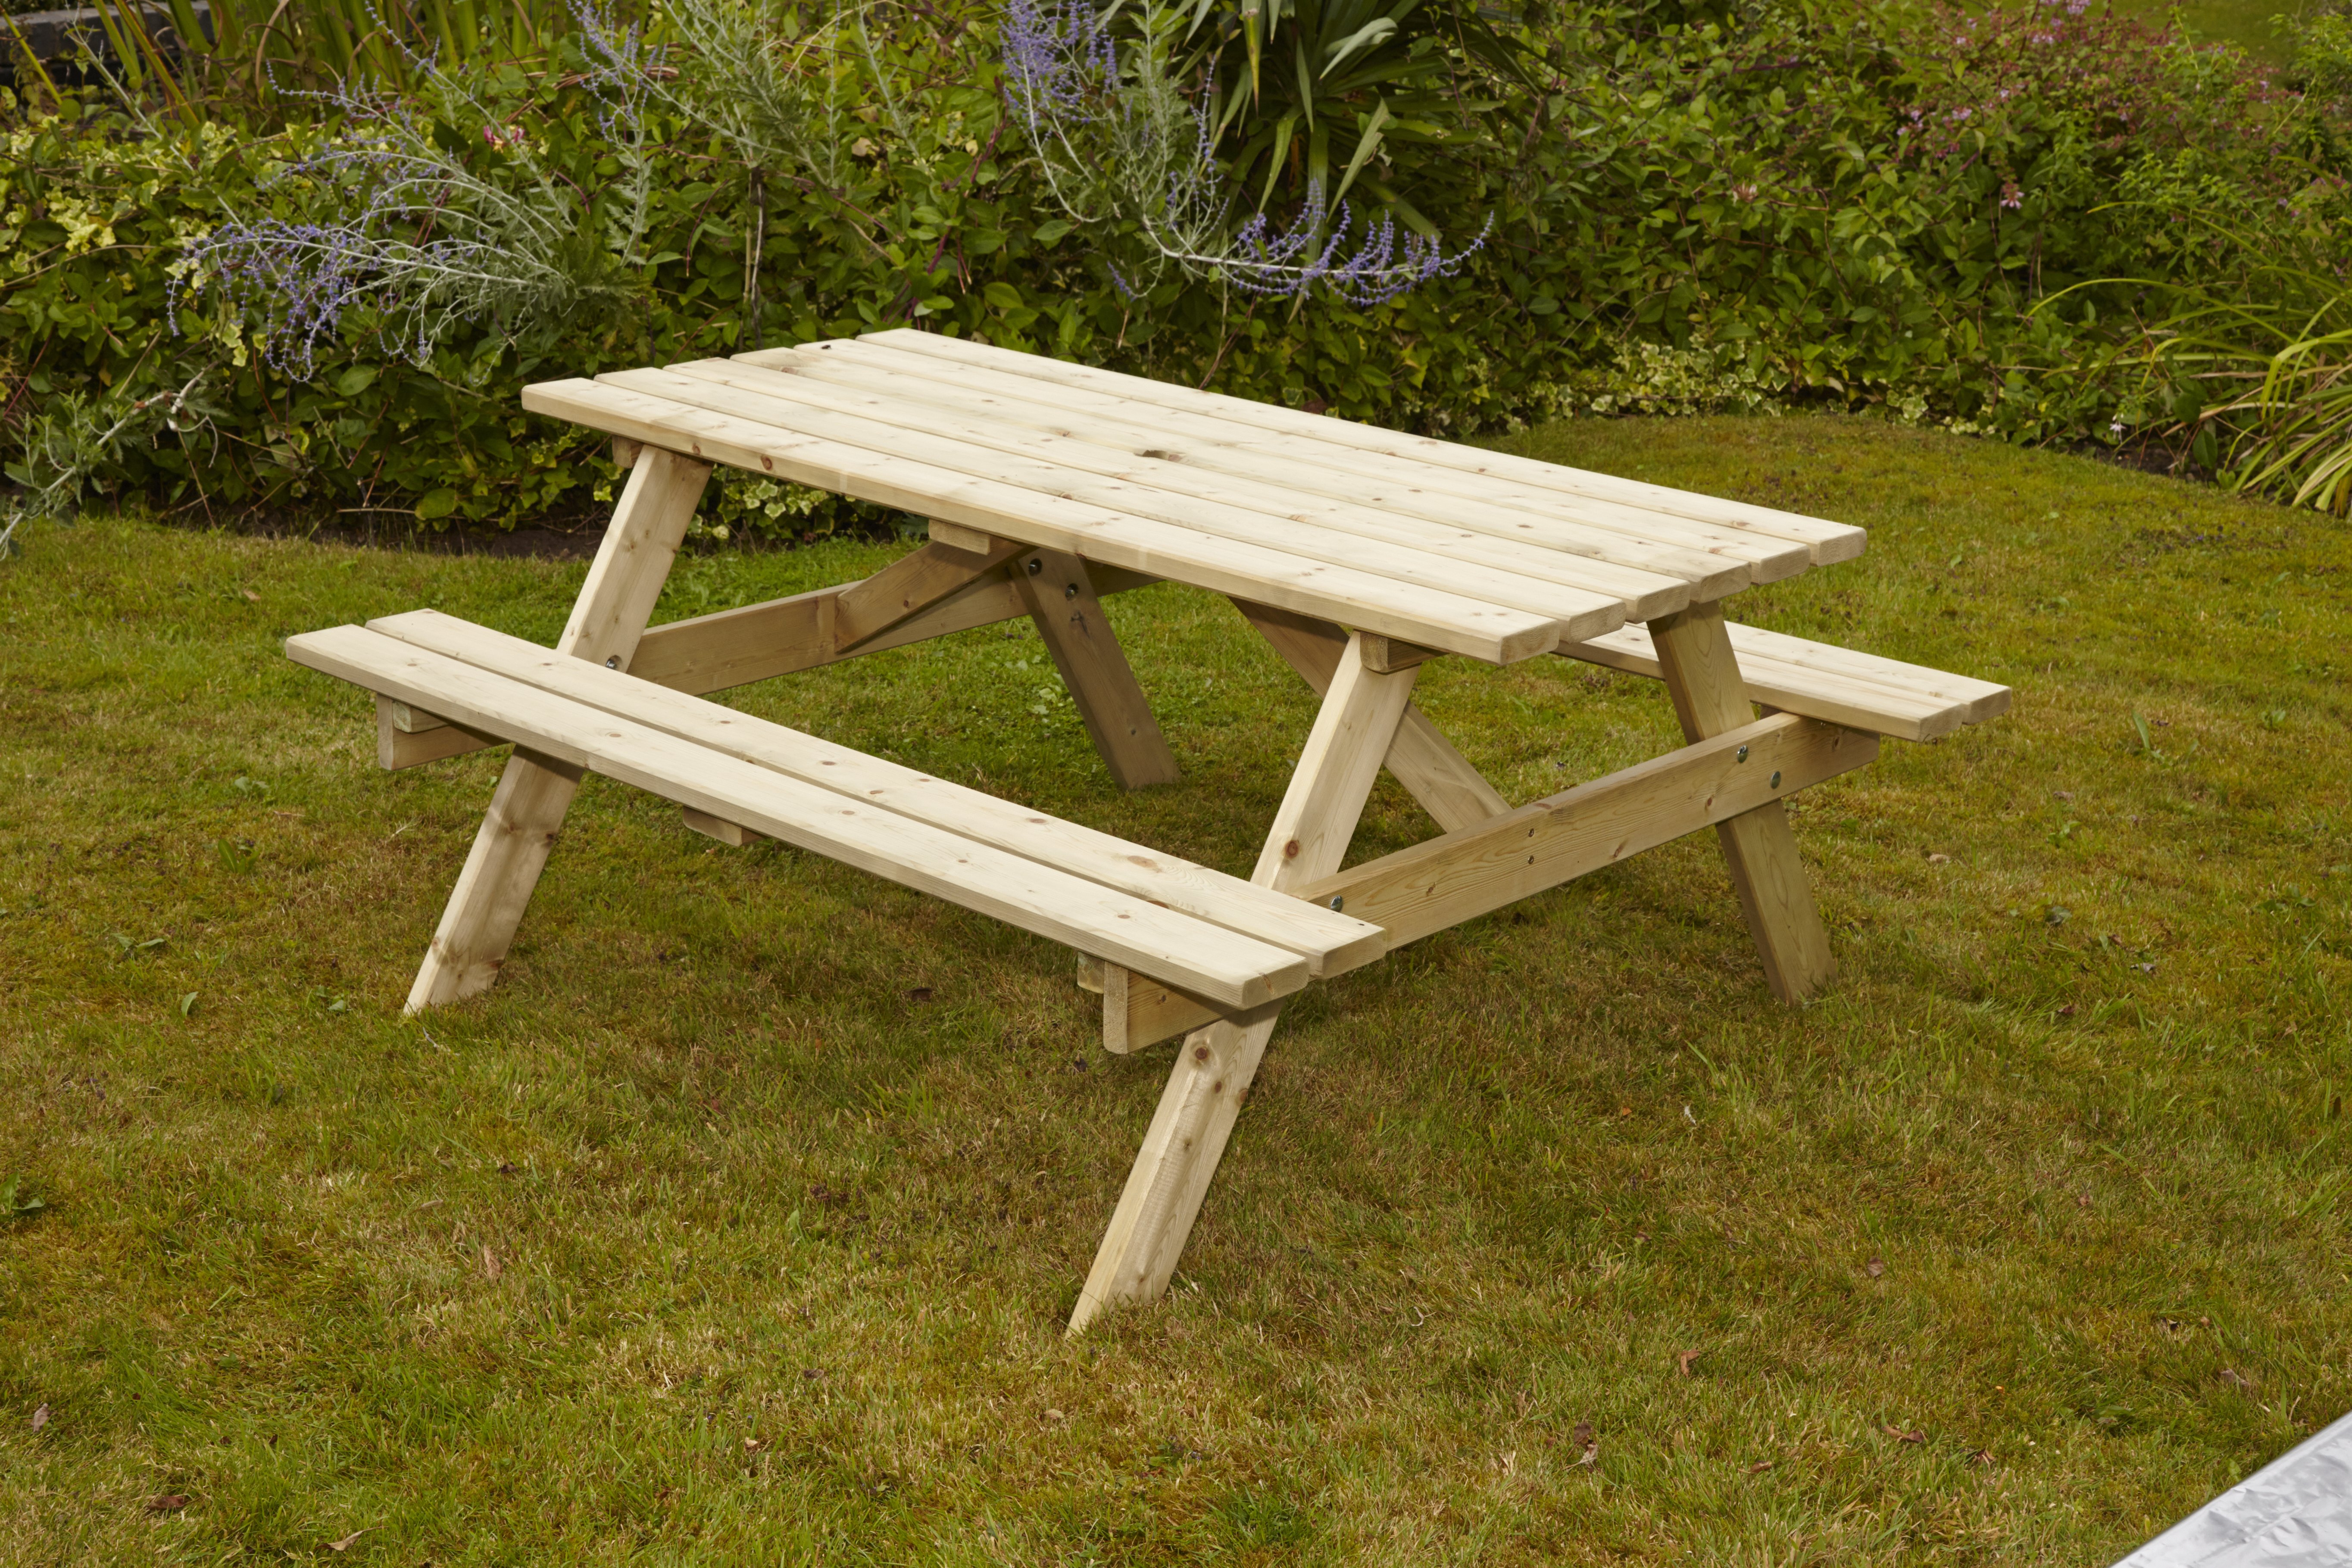 Anchor Fast Devon Picnic Bench M Pack Simply Wood - Picnic table anchors